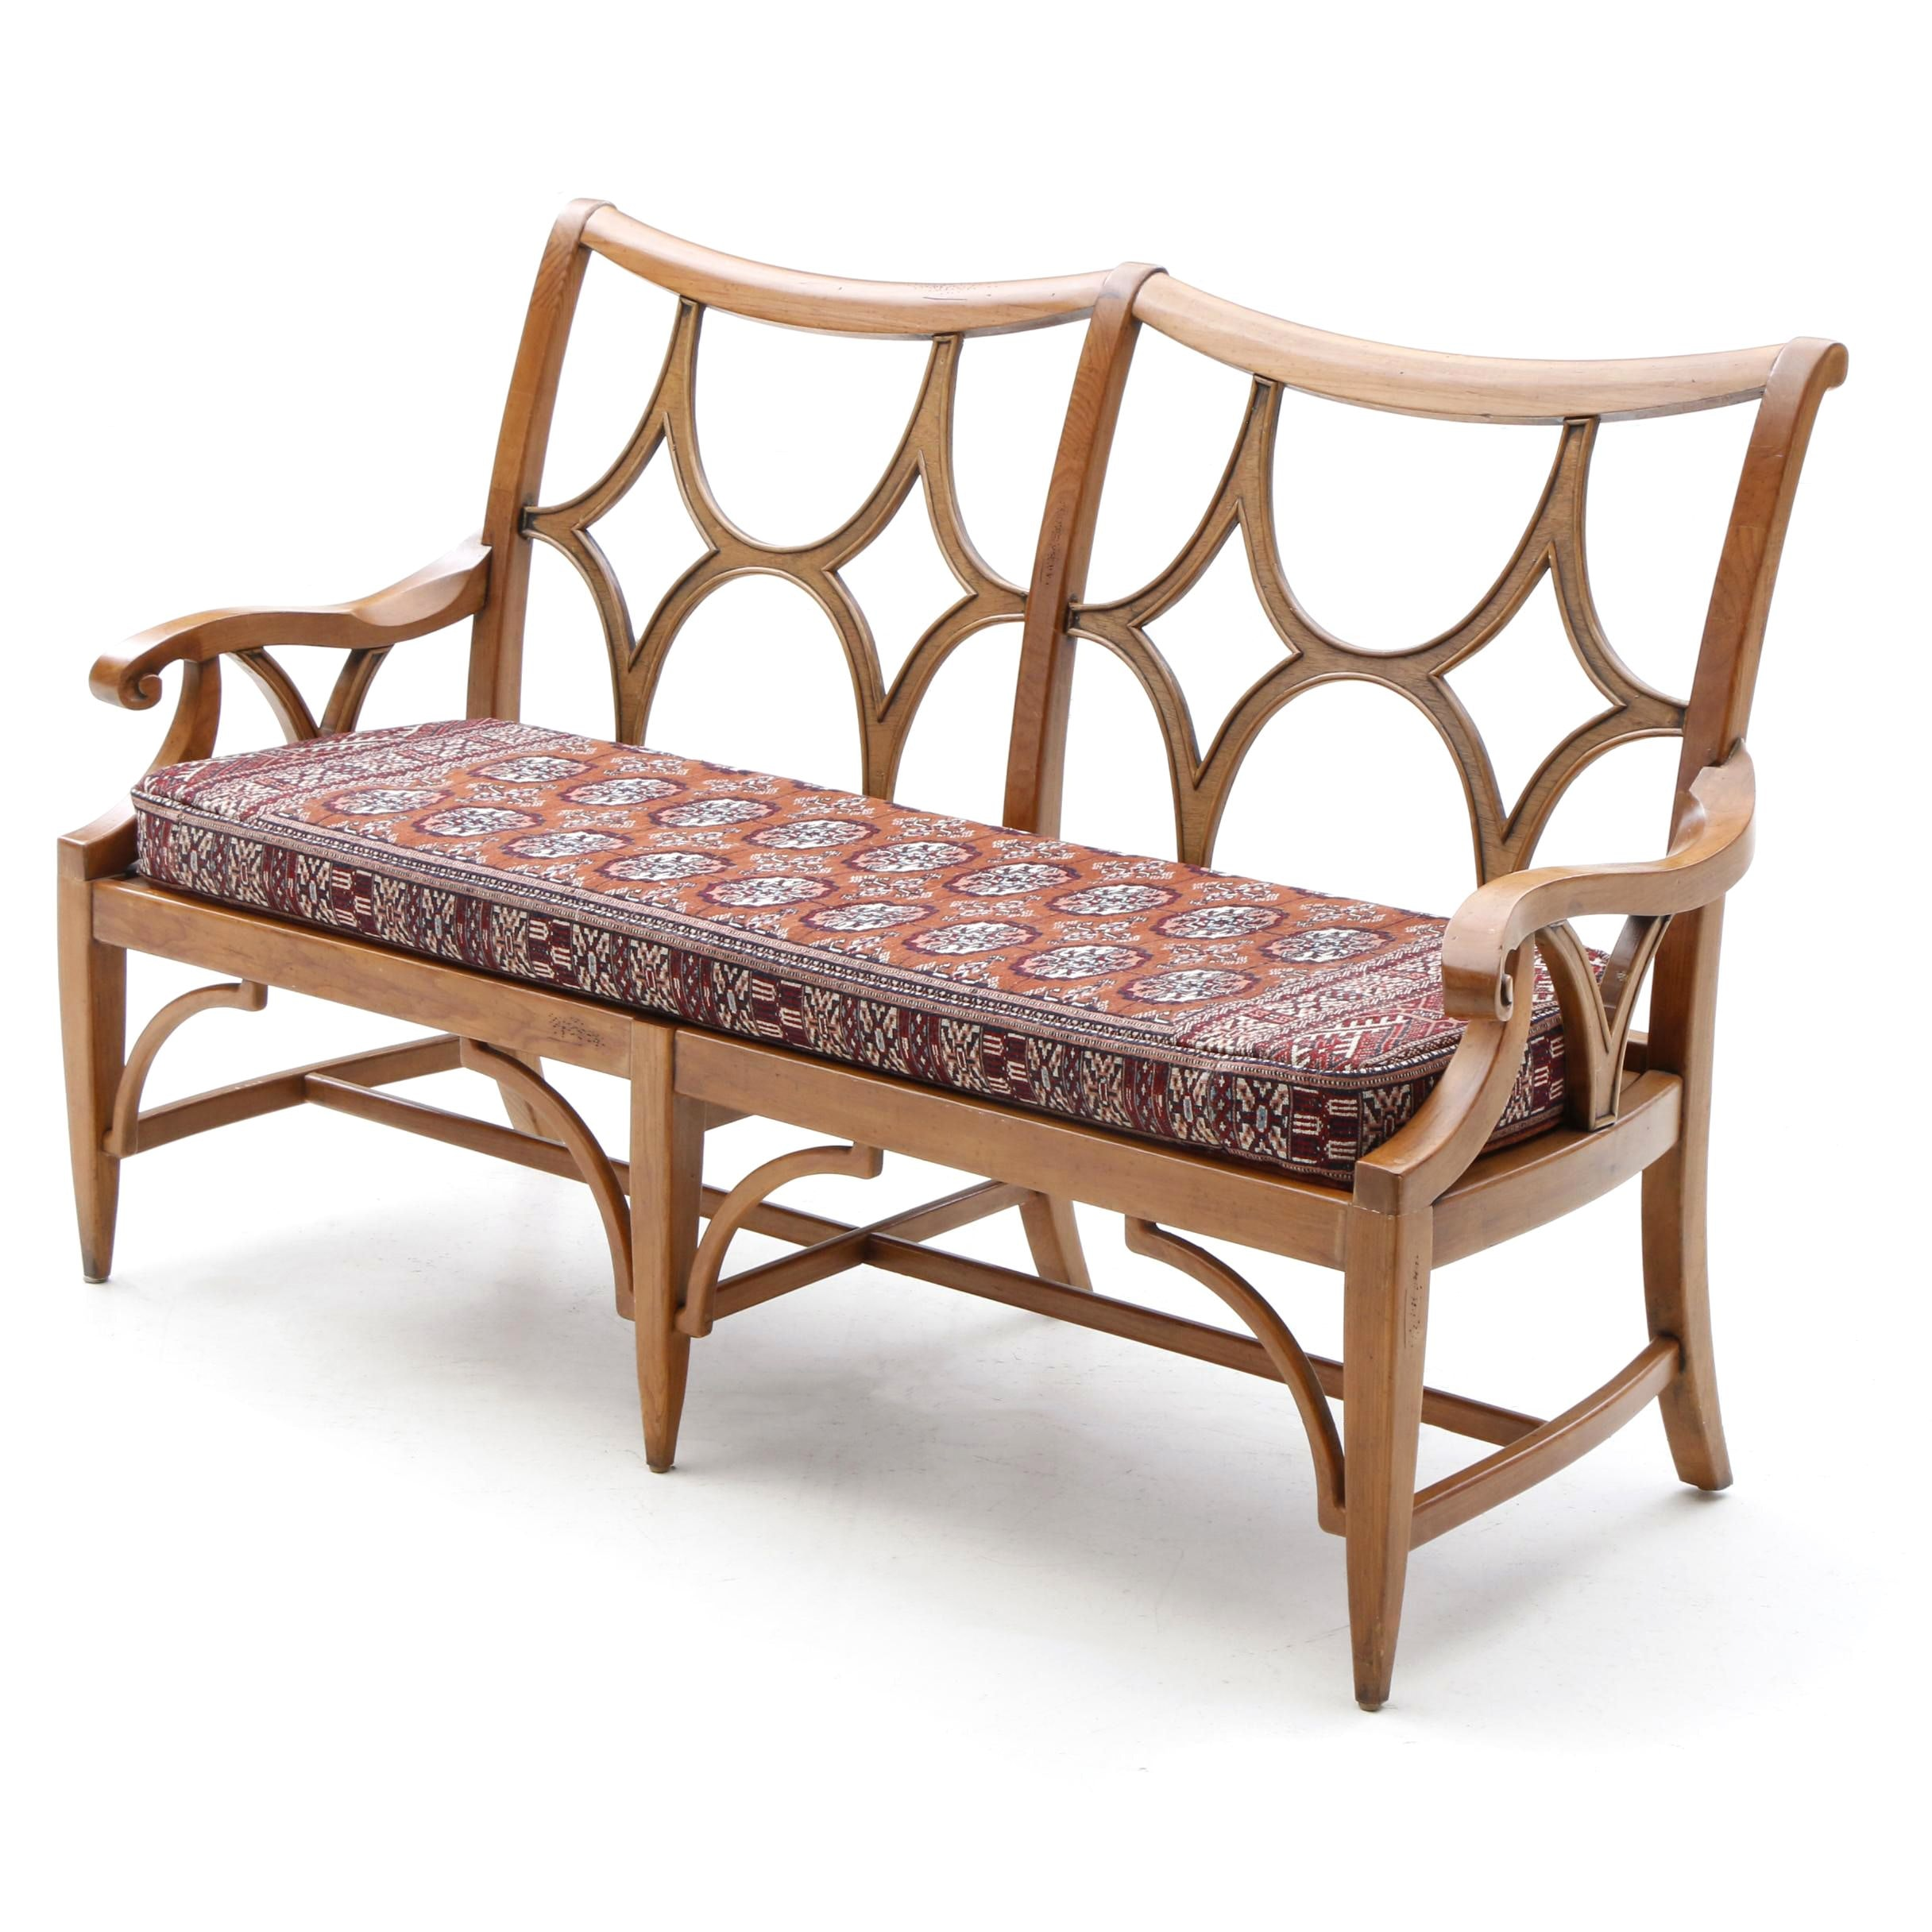 Maple Bench with Bokhara Rug Upholstered Cushion by Pennsylvania House